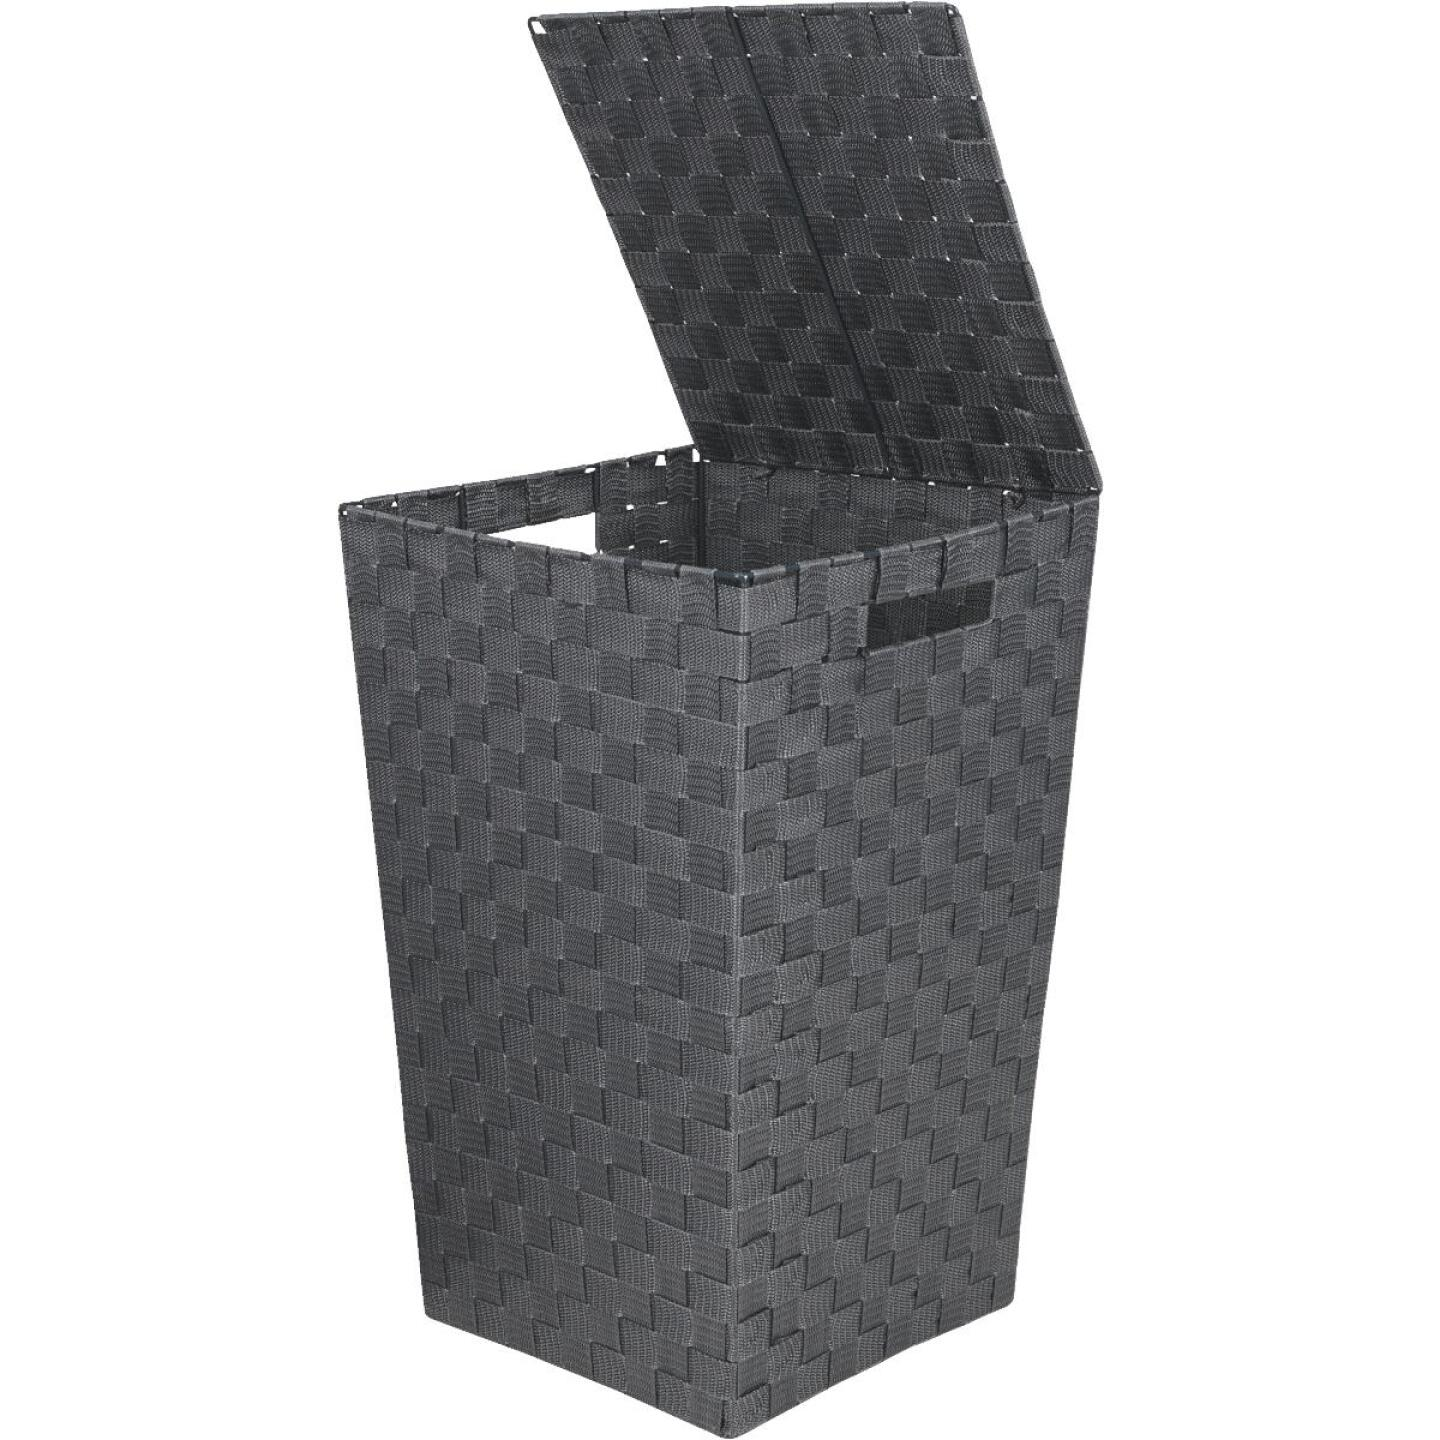 Home Impressions 13 In. x 20.5 In. H. Woven Laundry Hamper, Gray Image 1